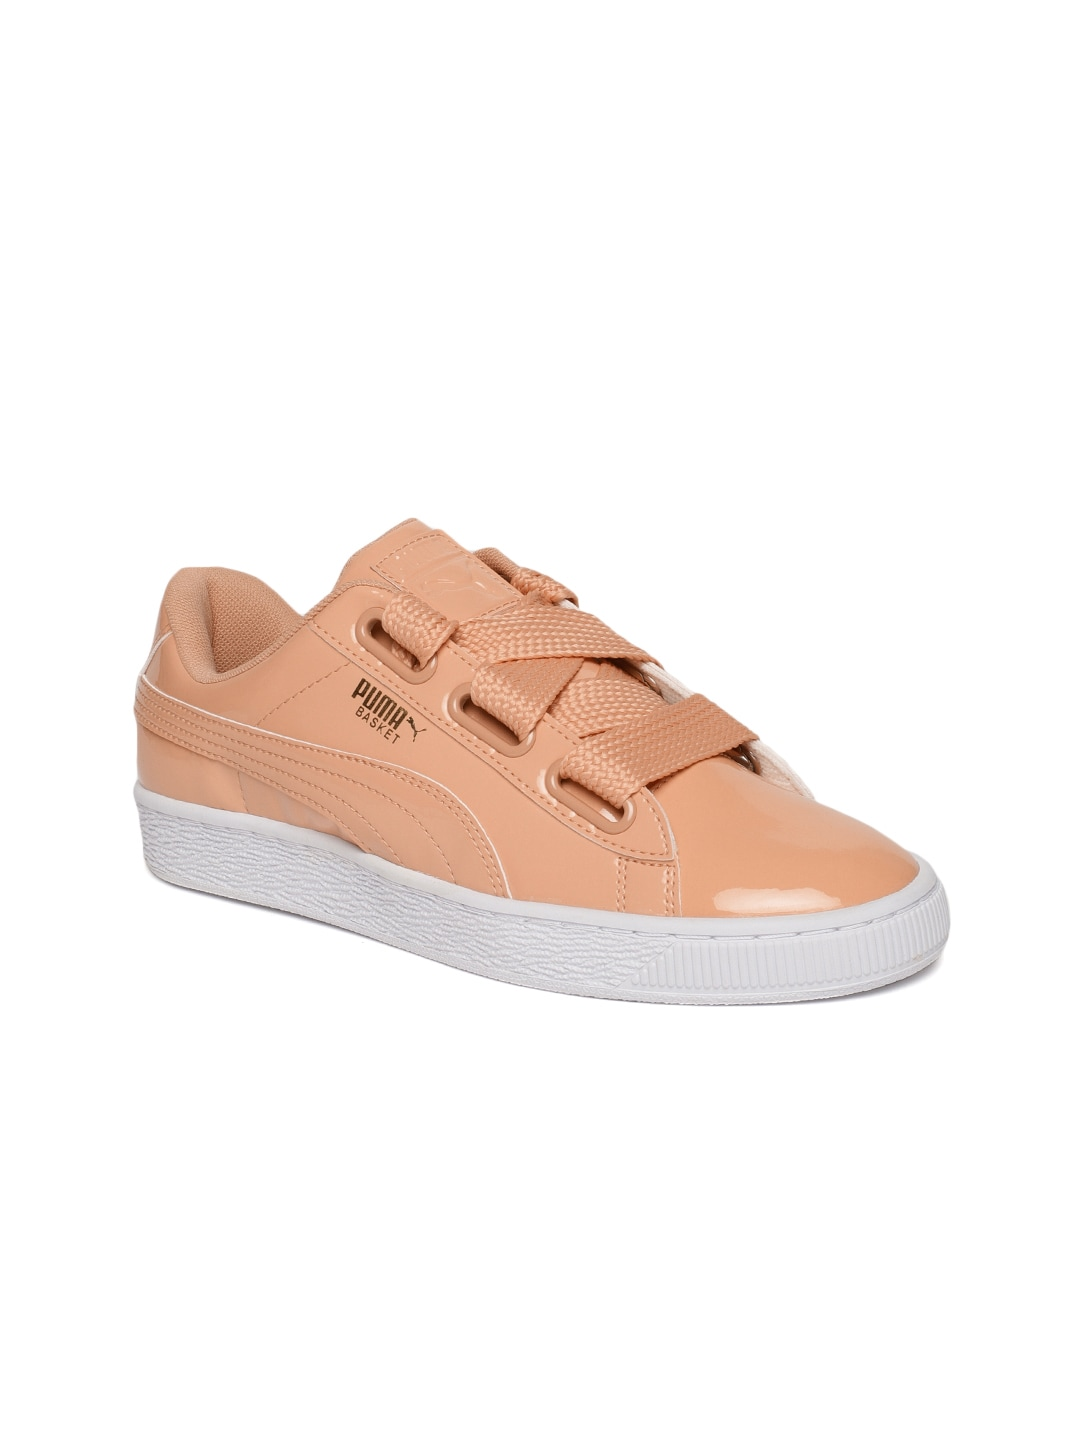 Casual Online White In Shoes Buy Puma India n0wONPk8X